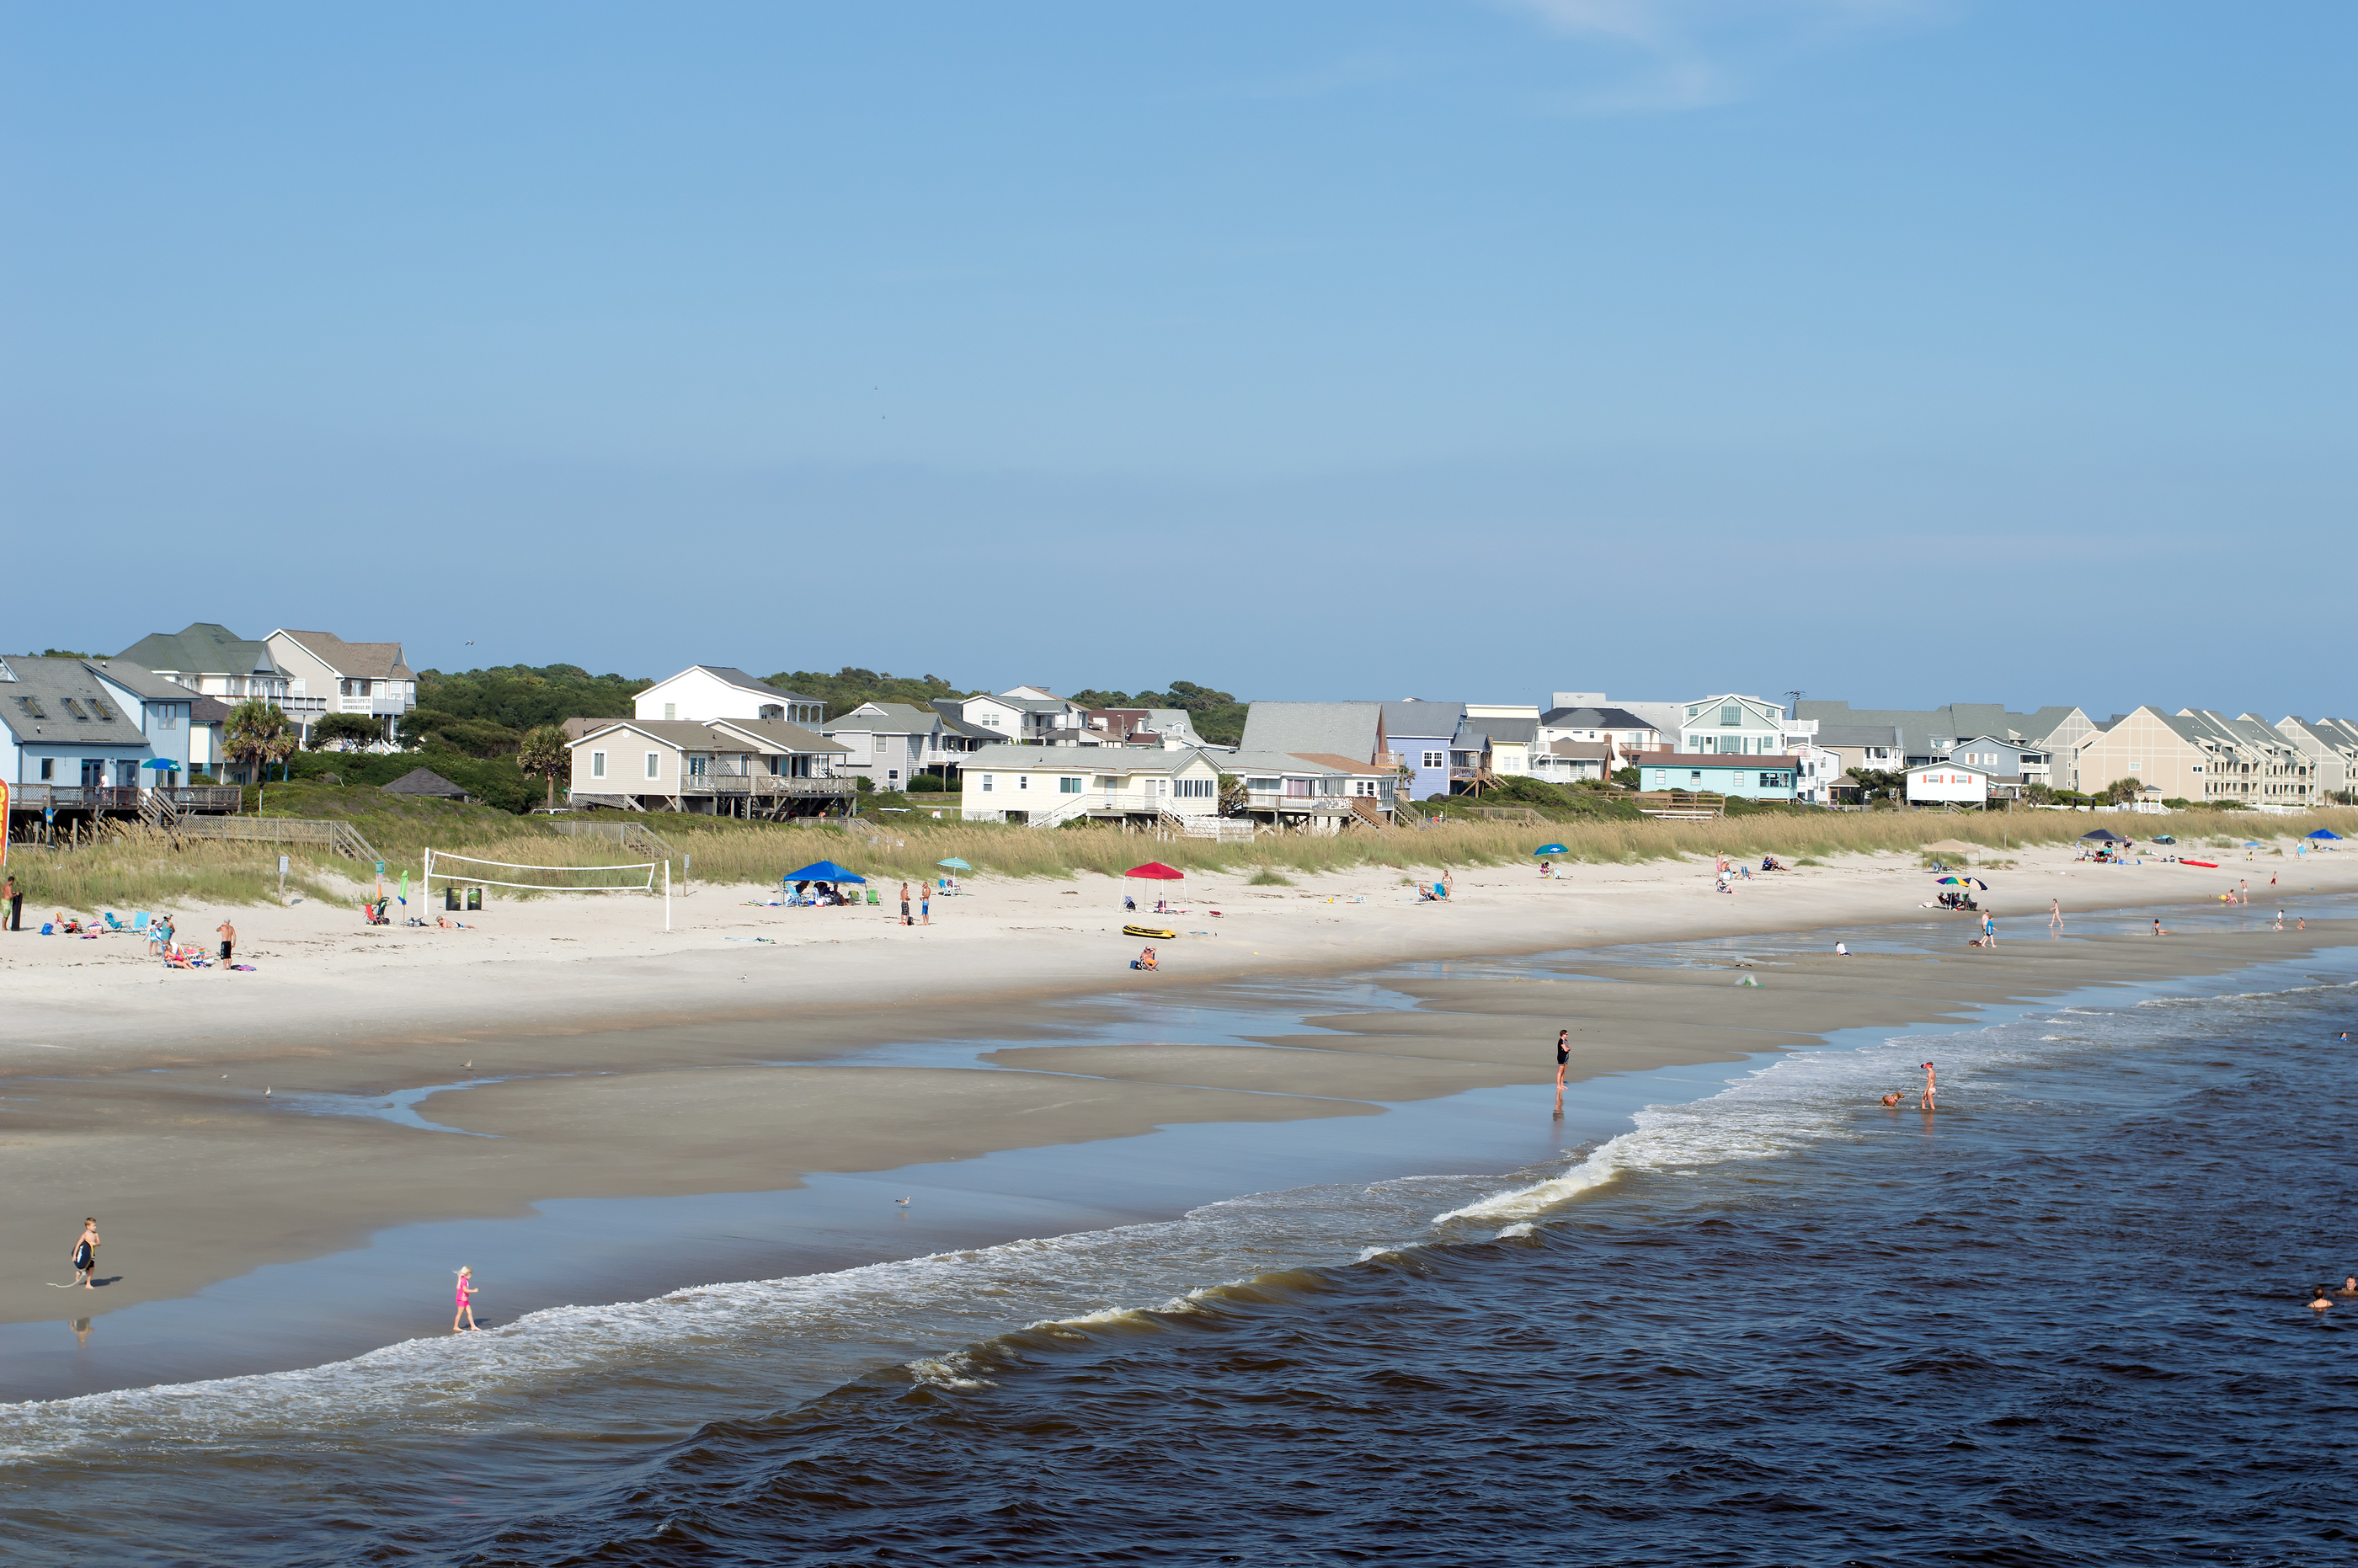 Yaupon Beach,NC USA - Aug. 15: Yaupon Beach: The Yaupon Beach Strand photographed on August 15, 2014.